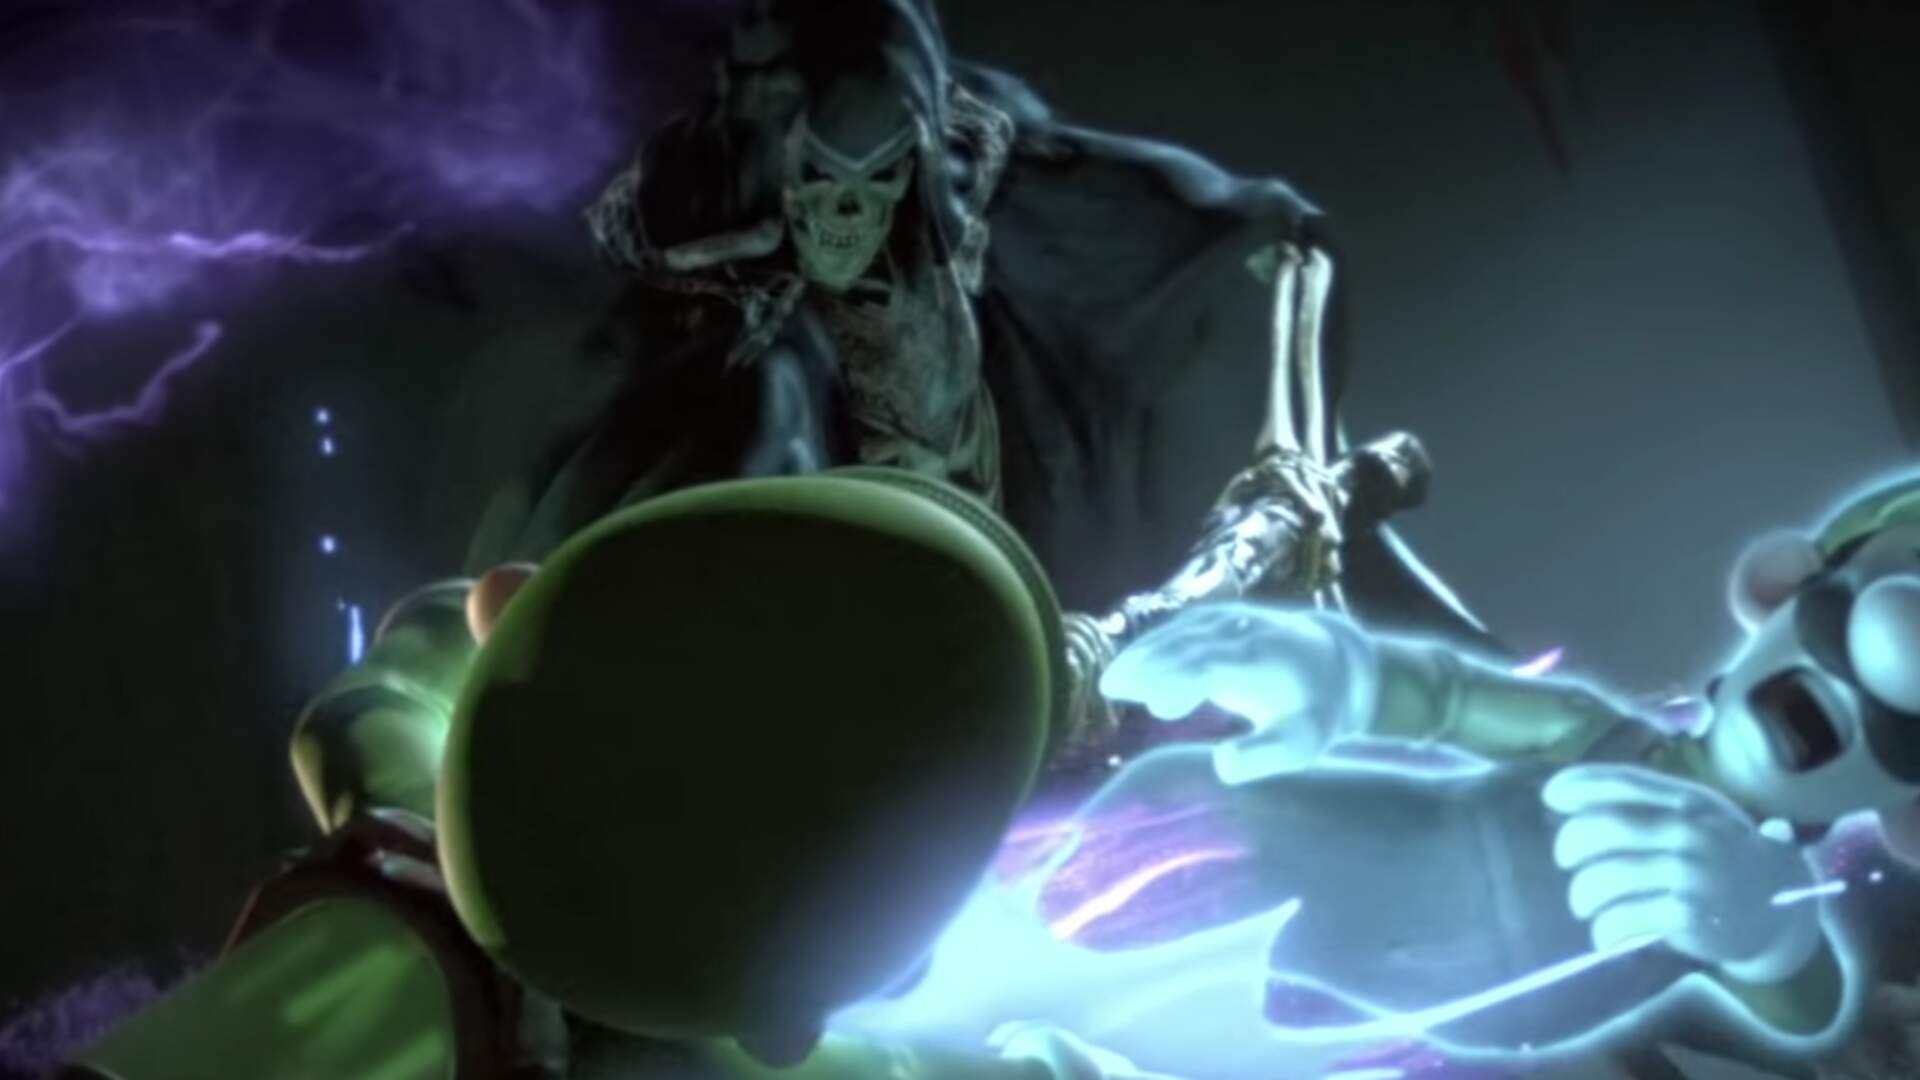 Morbid Fans Think Super Smash Bros. Ultimate Character Deaths Are Tied to Secret New Mode